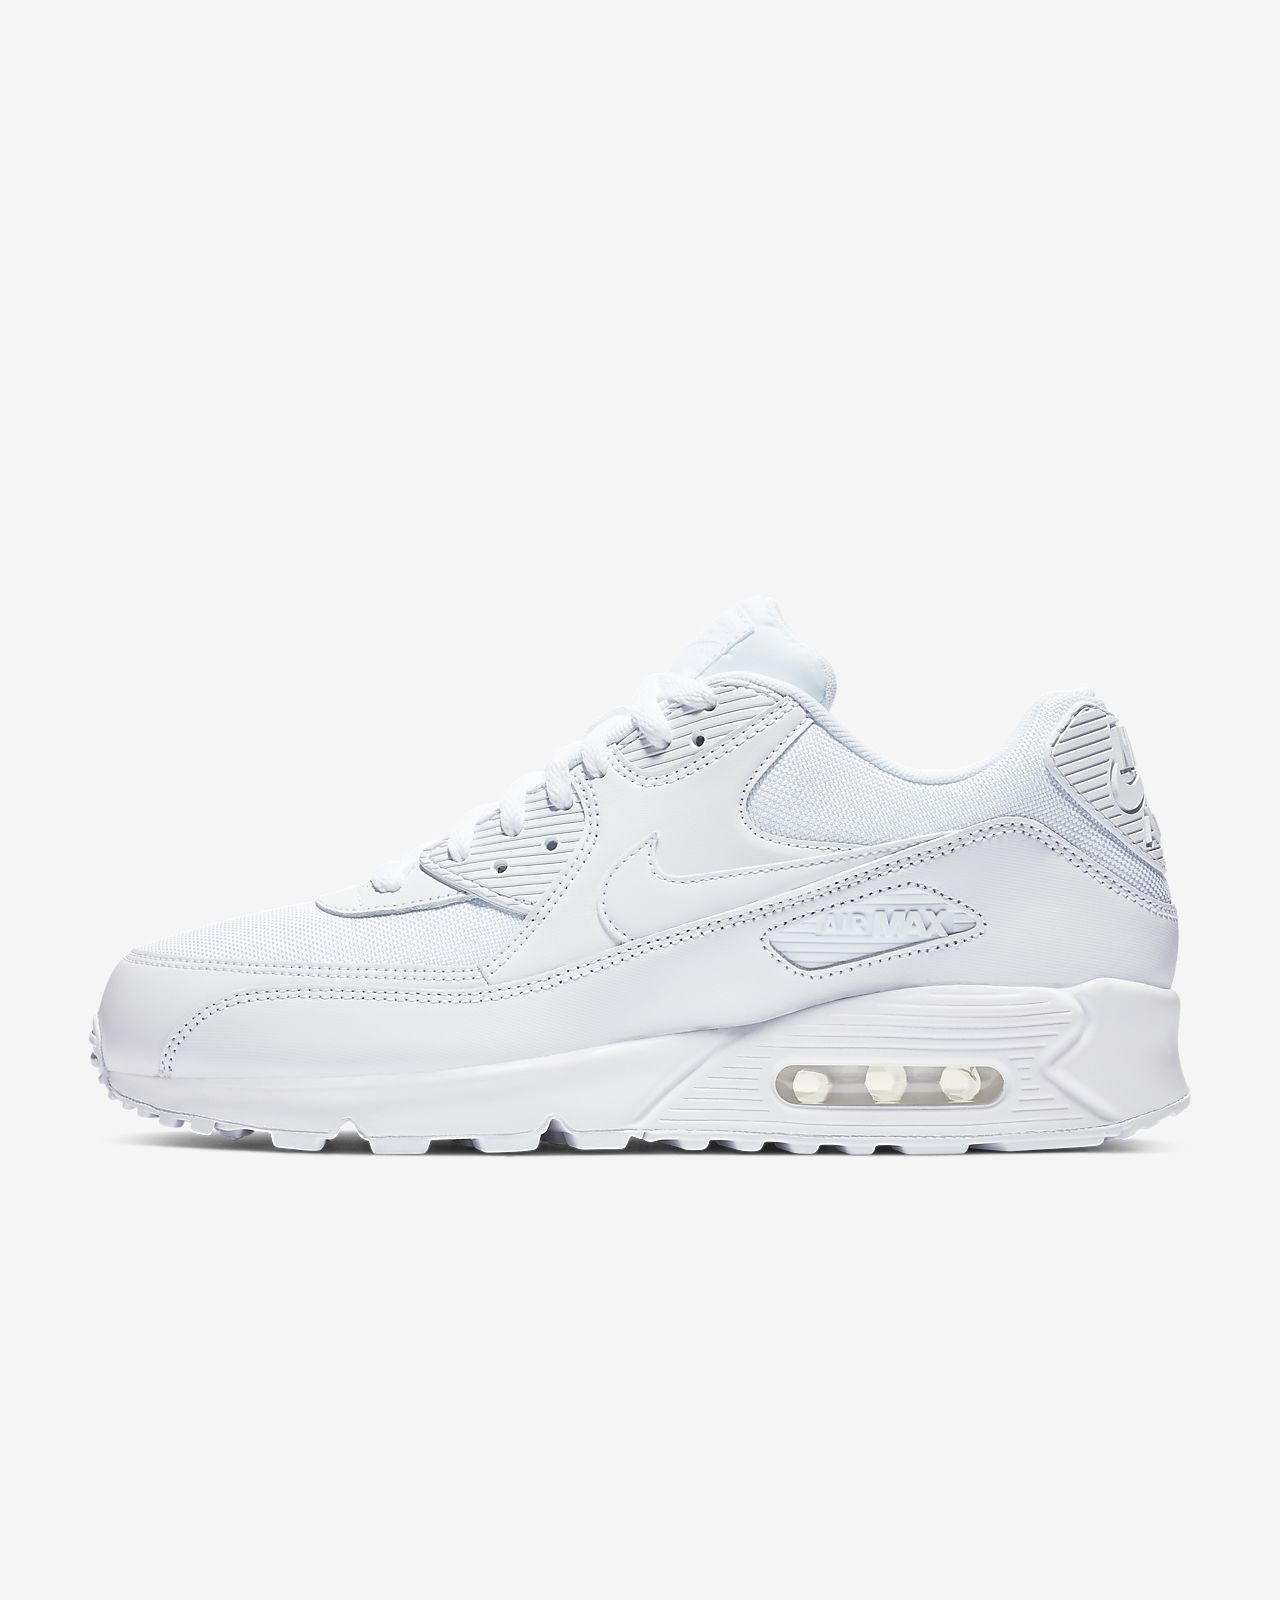 71e4364f9a8 Nike Air Max 90 Essential Men s Shoe